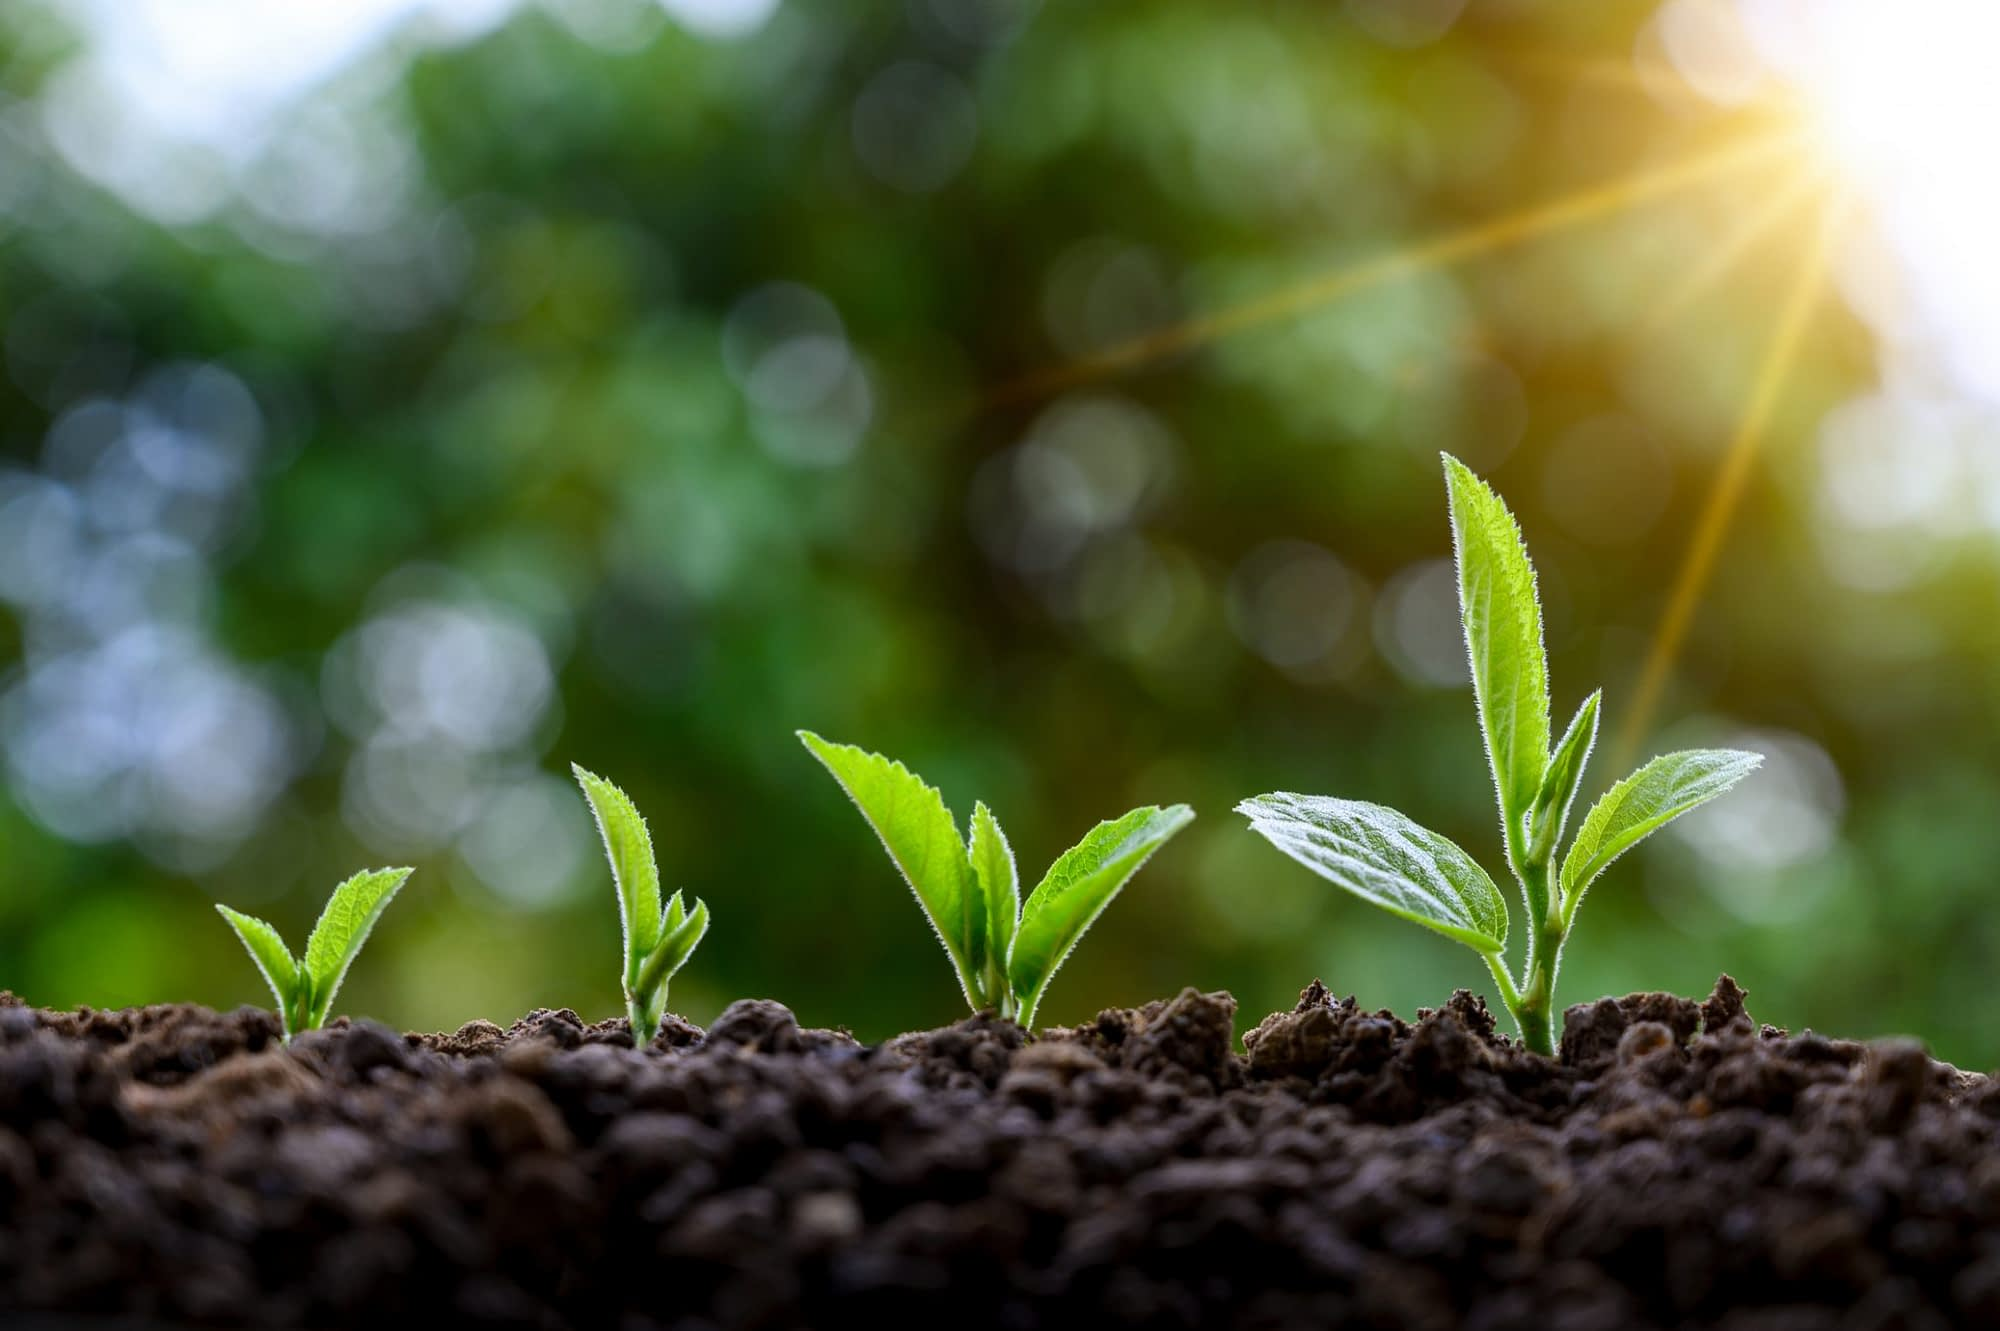 Development of seedling growth Planting seedlings young plant in the morning light on nature background